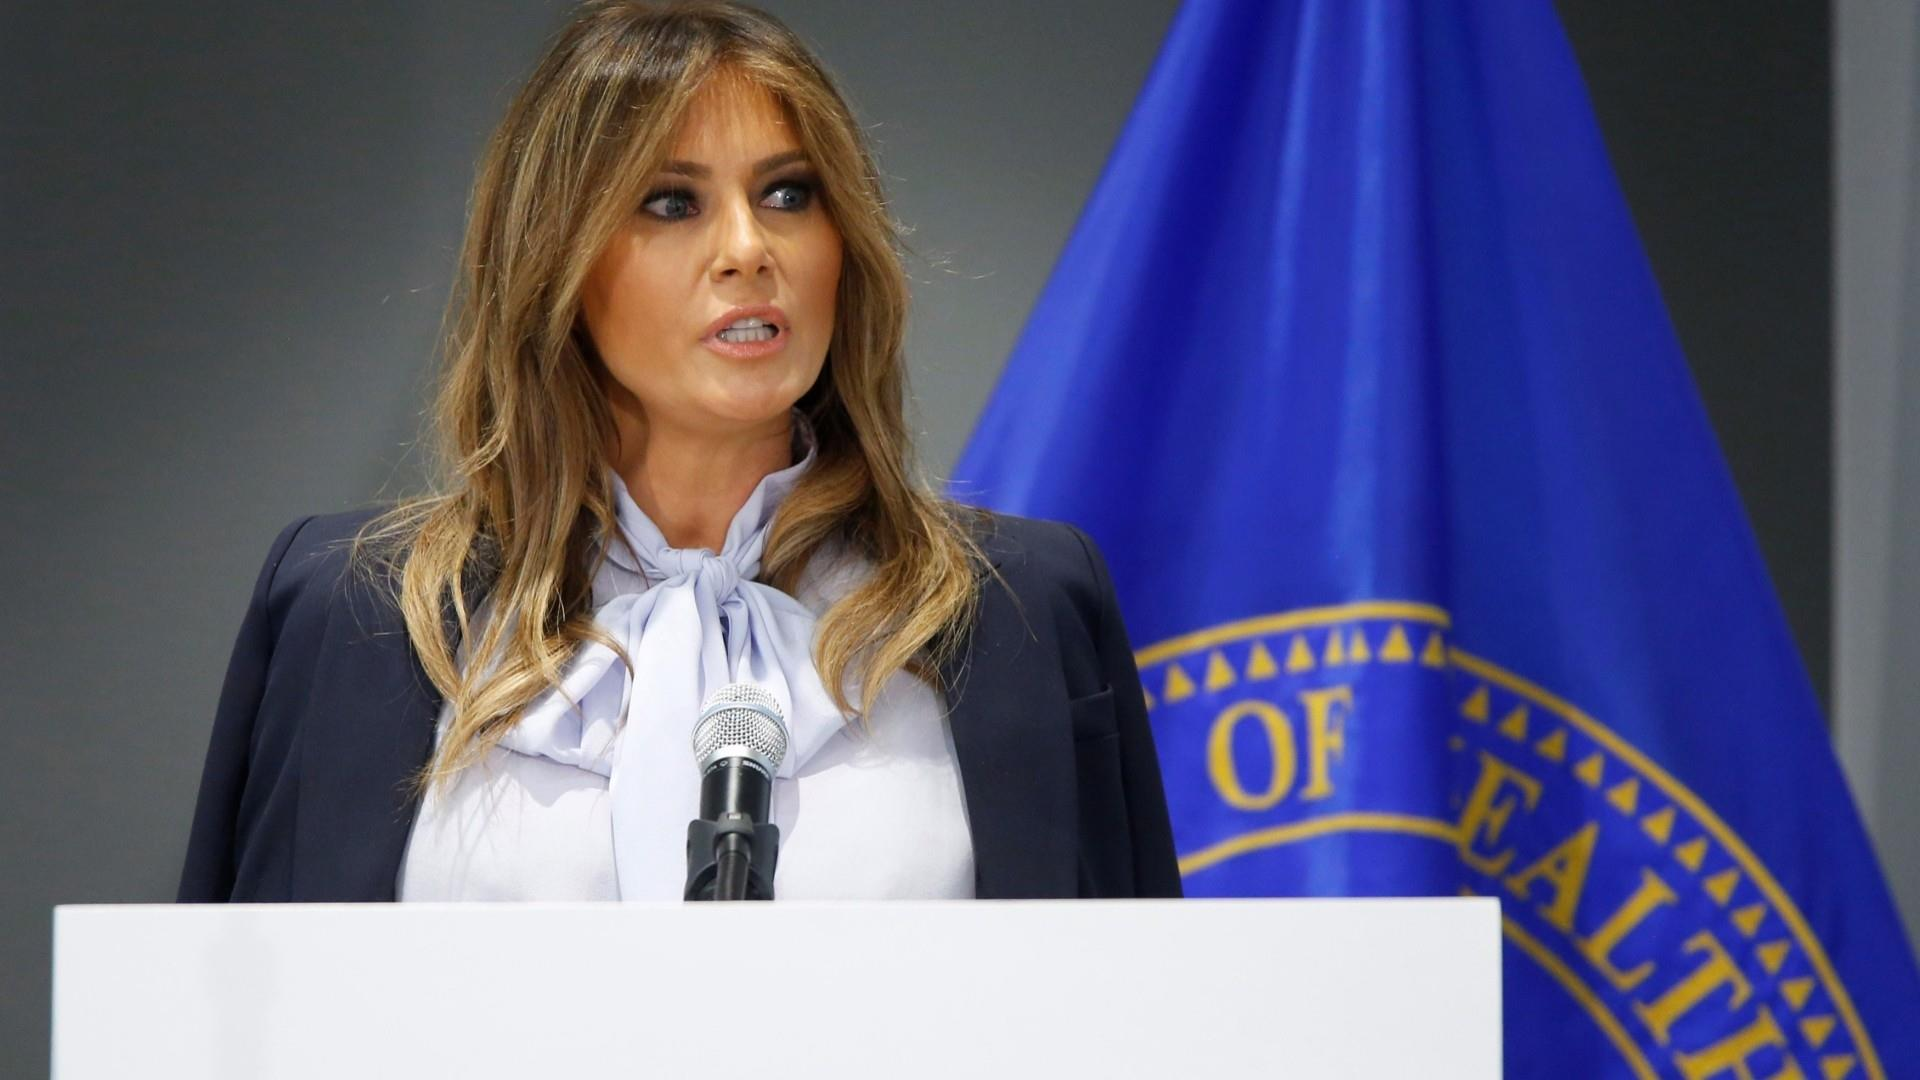 Breaking down first lady's stance against cyberbullying amid Trump tweet storm